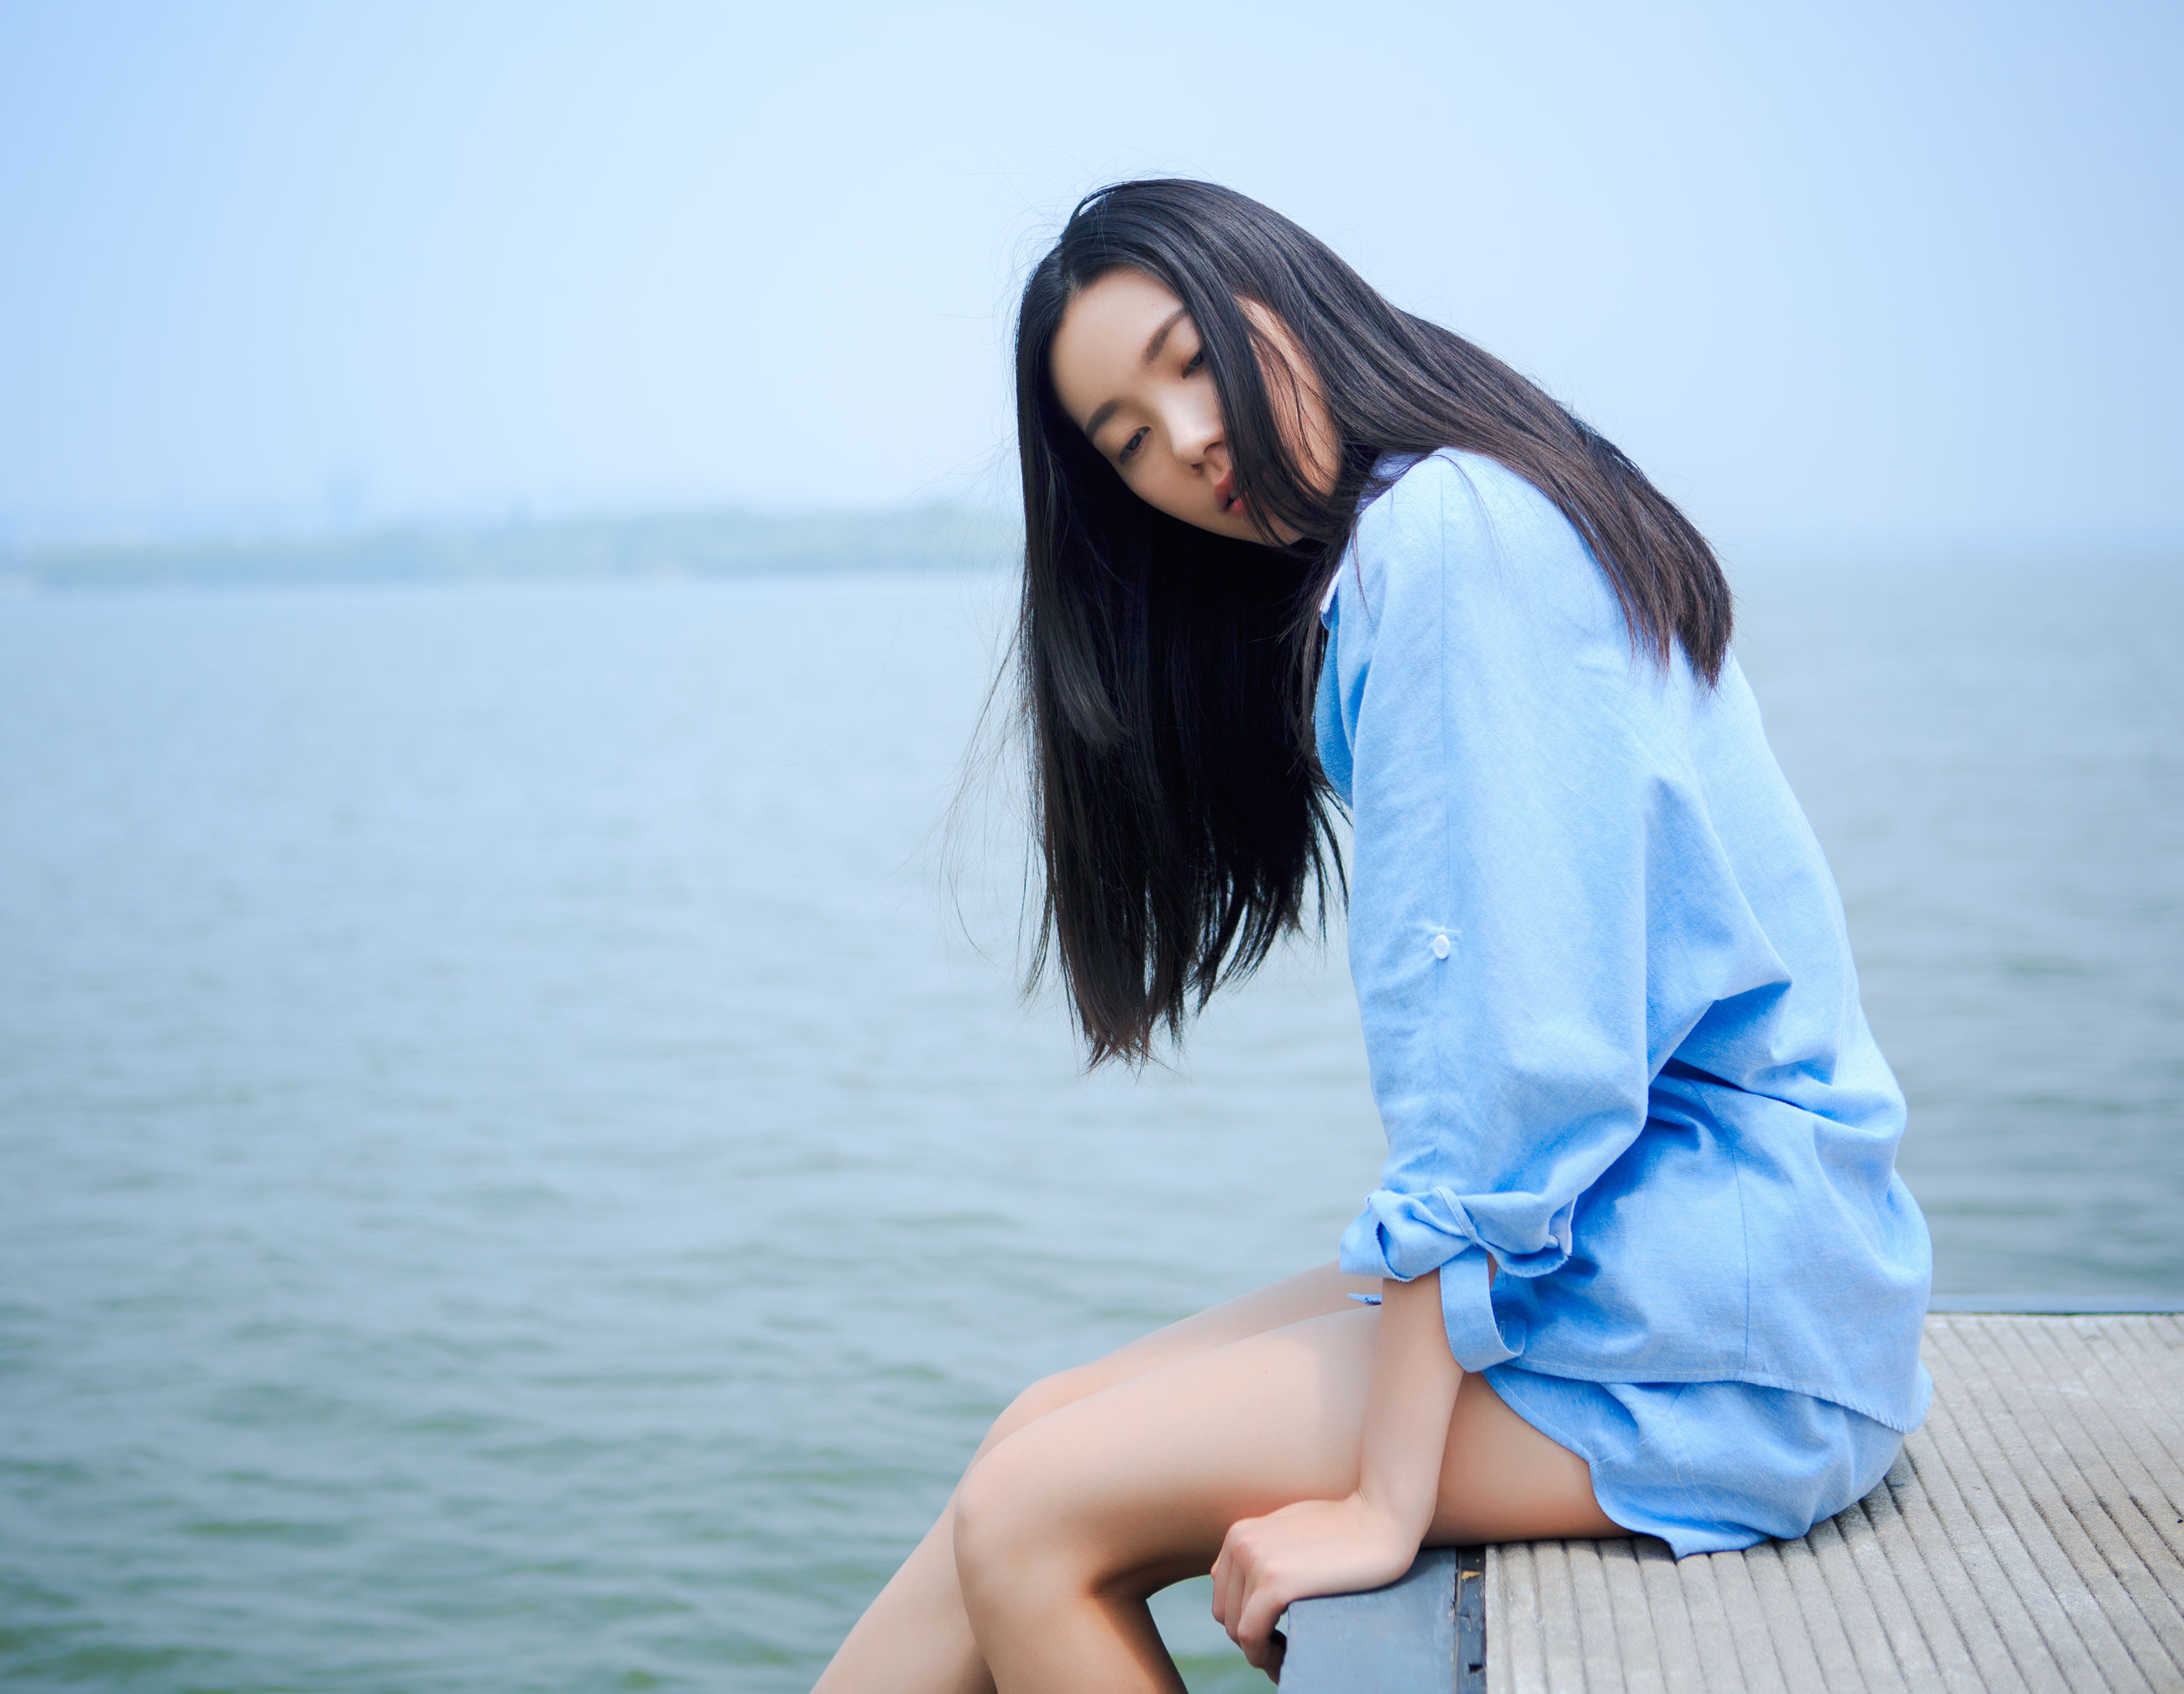 young adult, lifestyles, leisure activity, young women, water, person, sea, sunglasses, long hair, focus on foreground, casual clothing, three quarter length, portrait, front view, side view, looking at camera, sitting